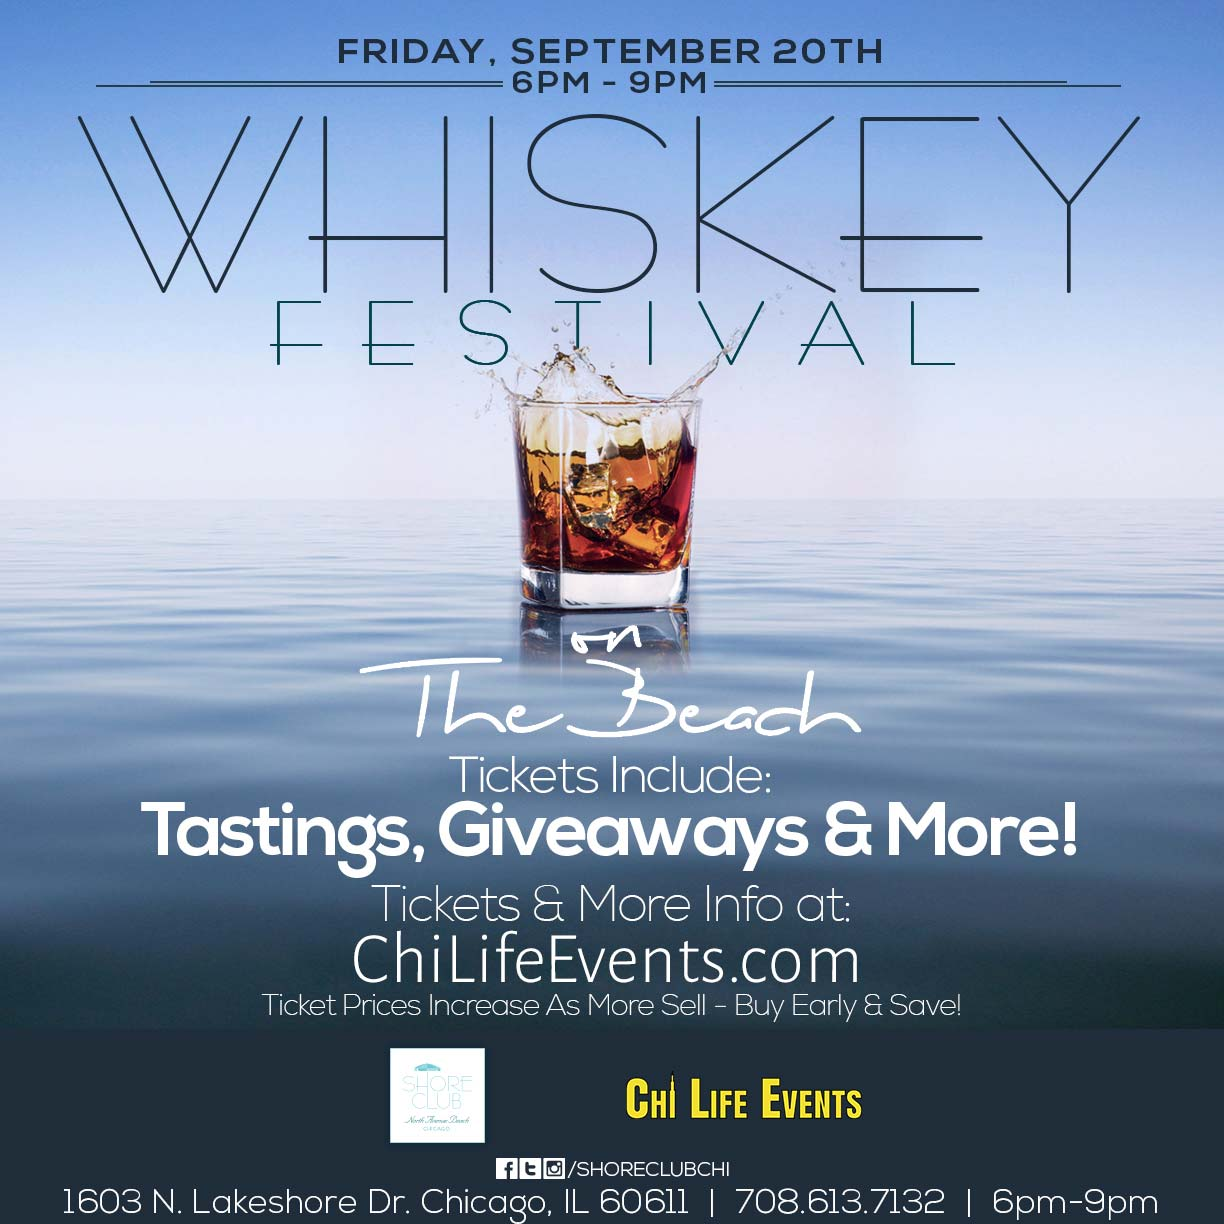 Whiskey Festival on the Beach Party - Tickets include whiskey tastings, giveaways & MORE! We will have a variety of different  whiskeys available for sampling!